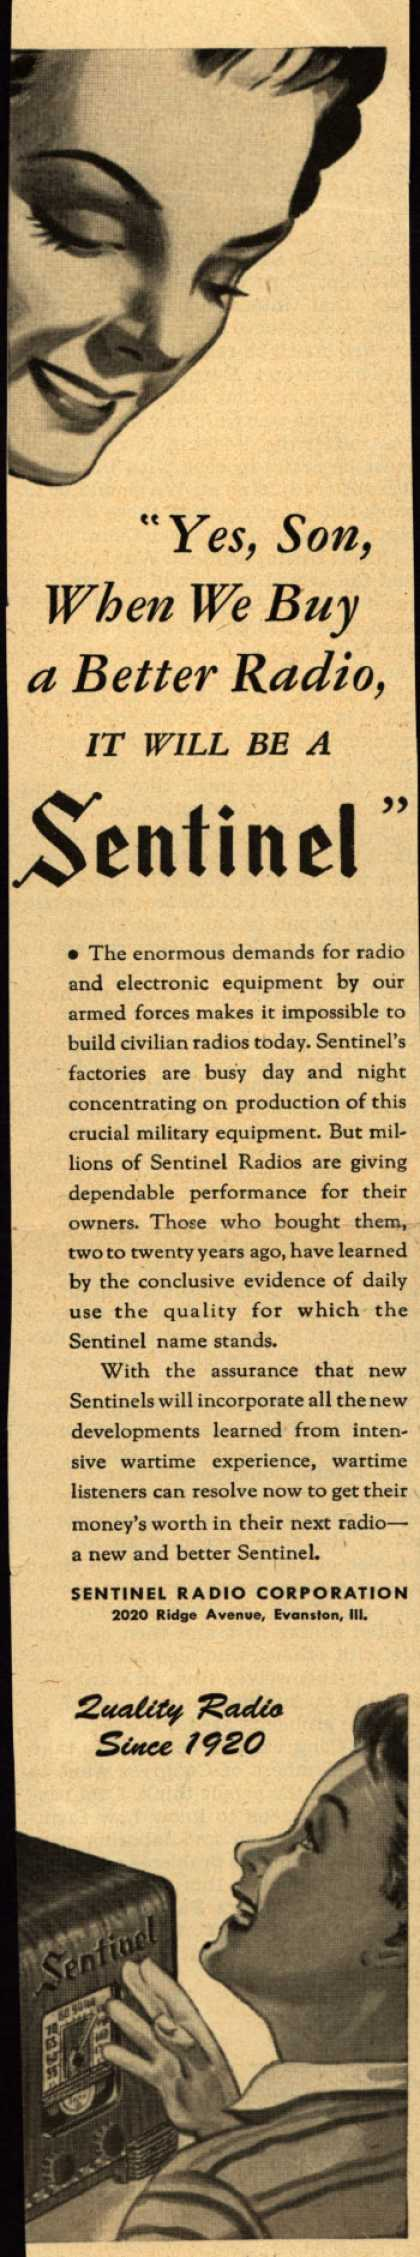 "Sentinel Radio Corporation's Radio – ""Yes, Son, When We Buy a Better Radio, It Will Be a Sentinel"" (1944)"